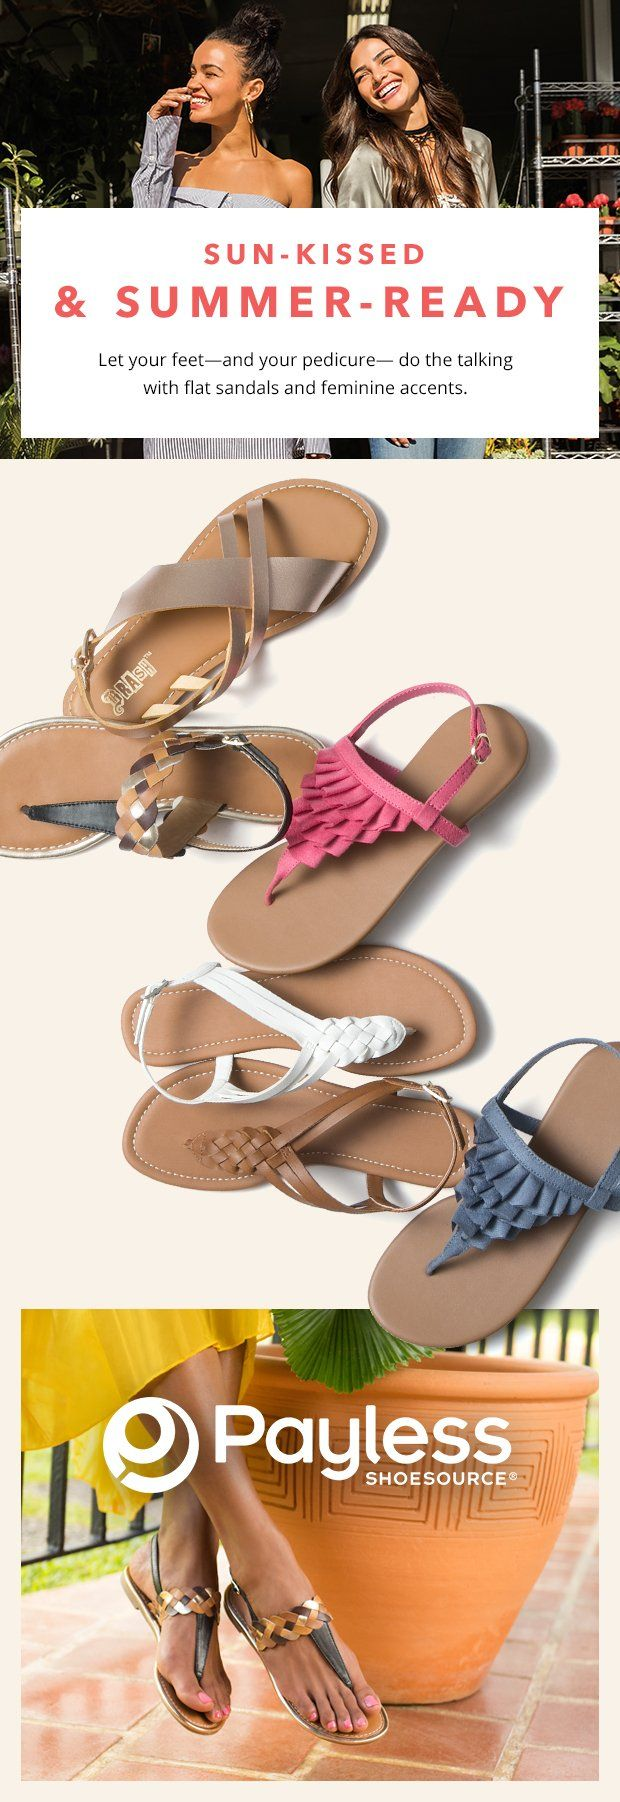 Payless Shoes For Women Shoes Online